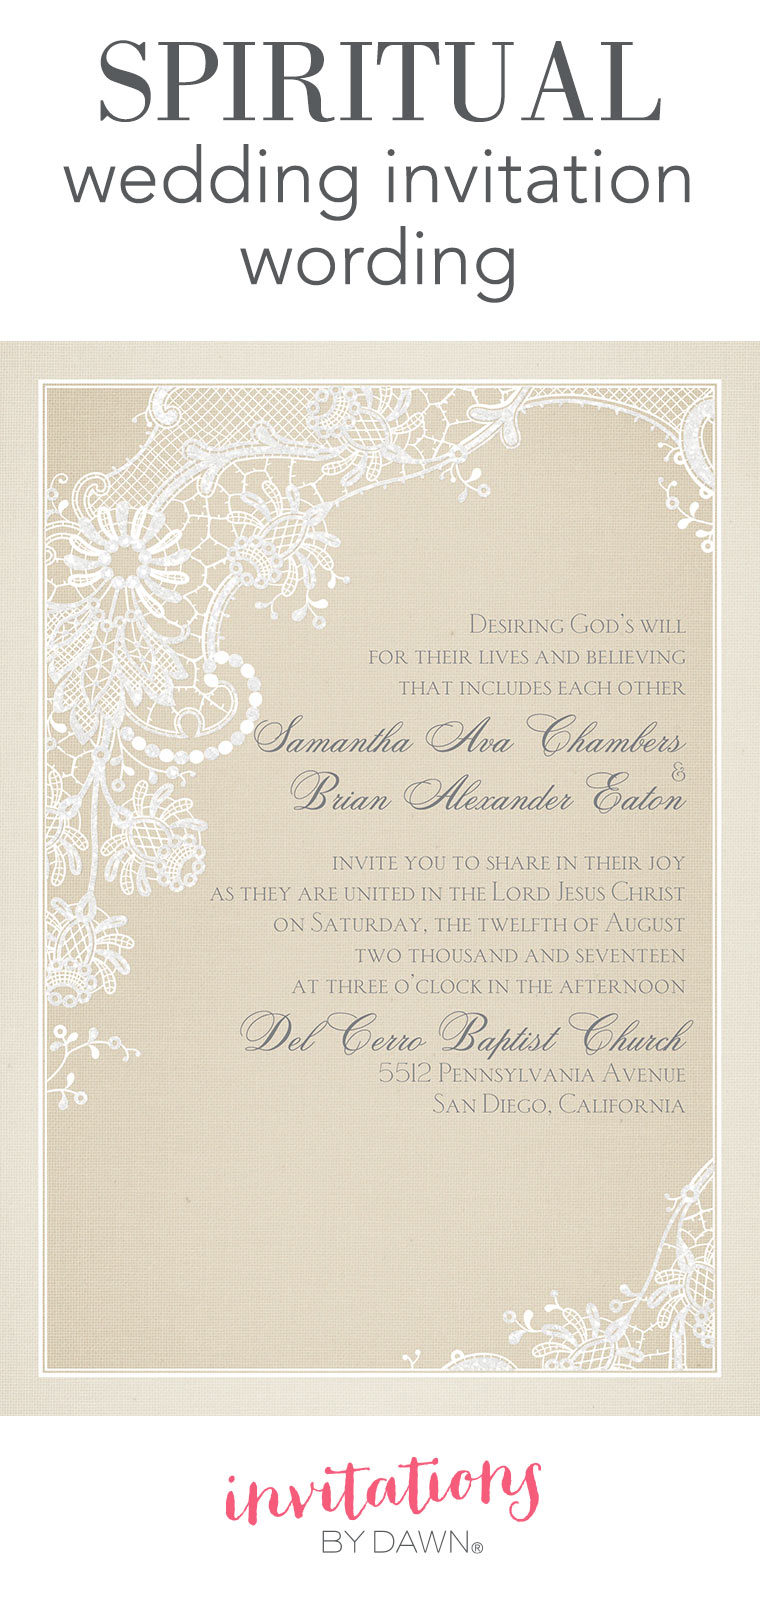 Spiritual Wedding Invitation Wording – Christian Wedding Invitation Wording Verses